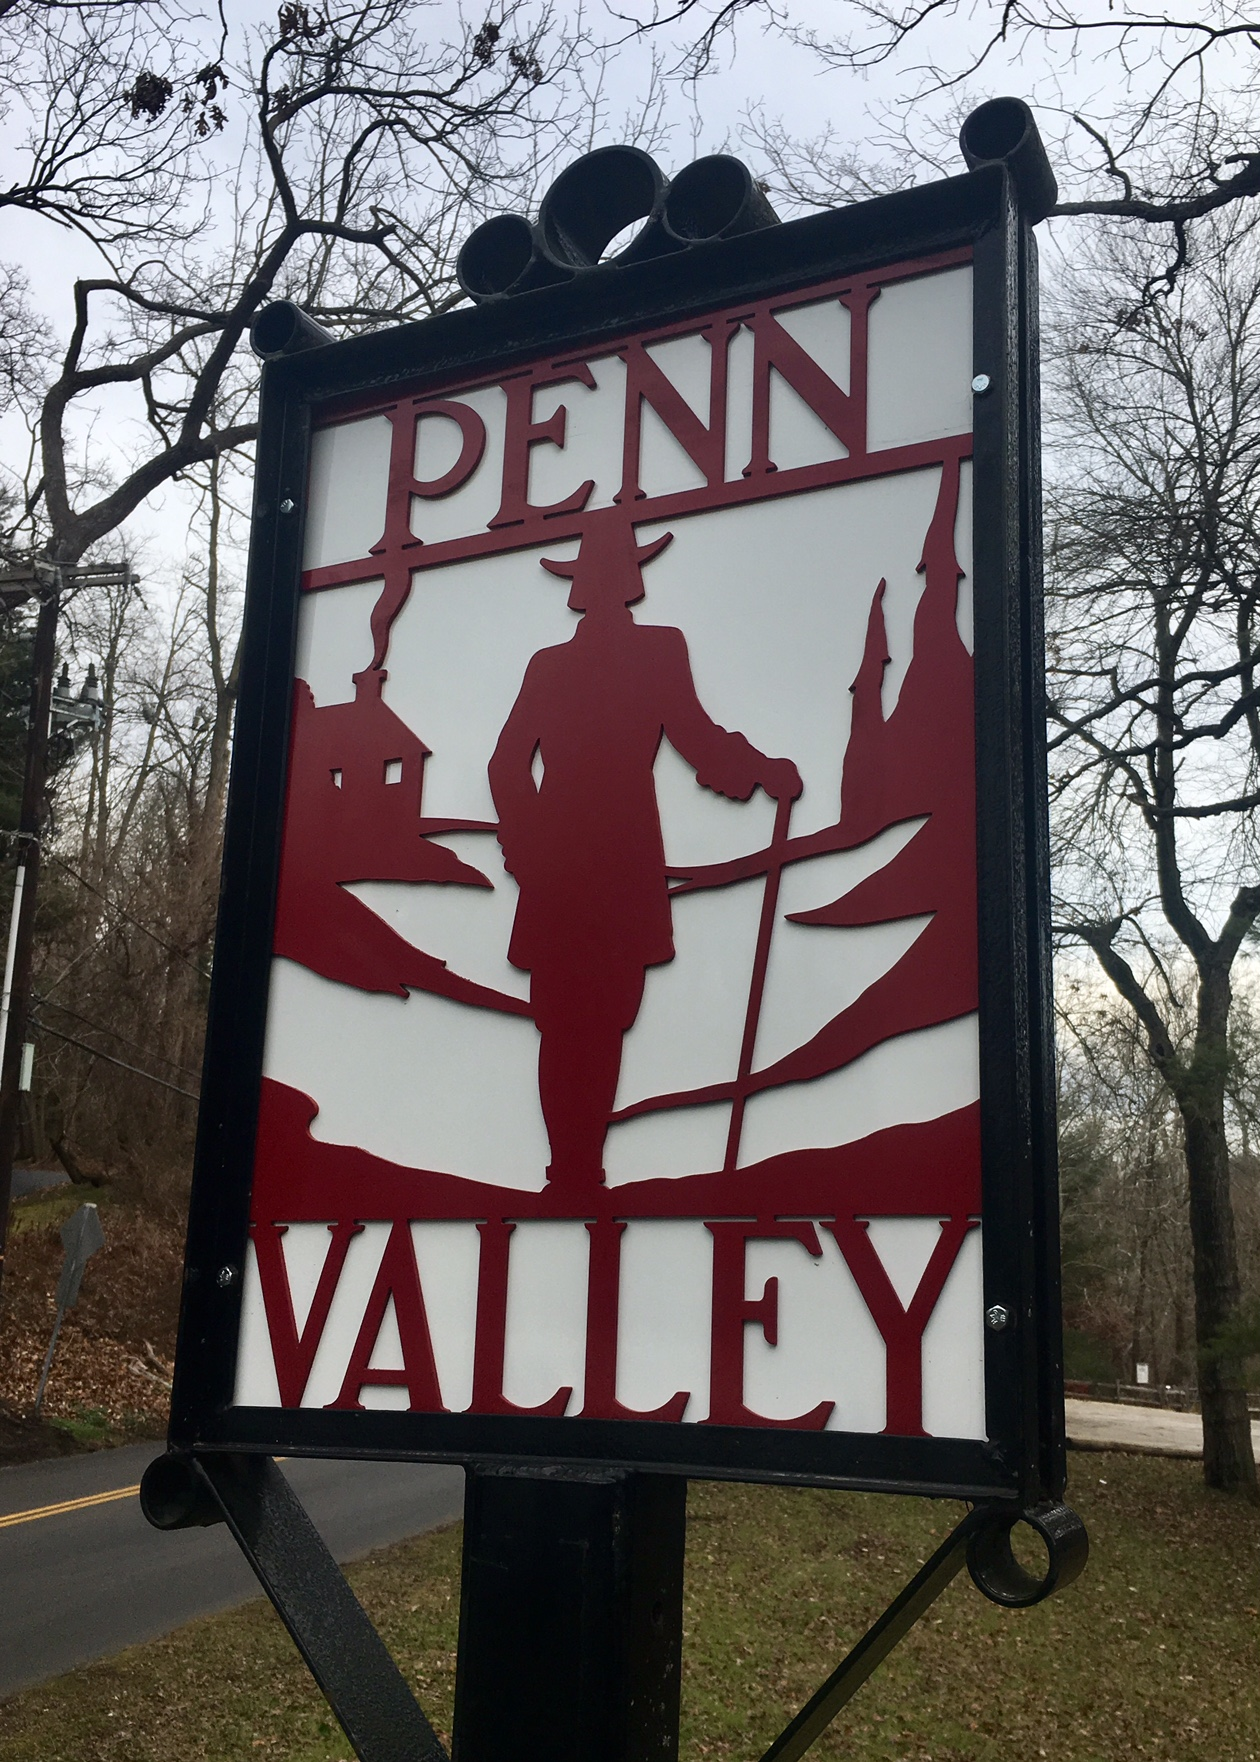 PVCA owns and cares for historic Penn Valley signs located at entrances to our neighborhood. Your dues helped to fund brand new, white aluminum, powder coated backings to replace deteriorating older ones. Thanks to LMTS Public Works for installing them in January.